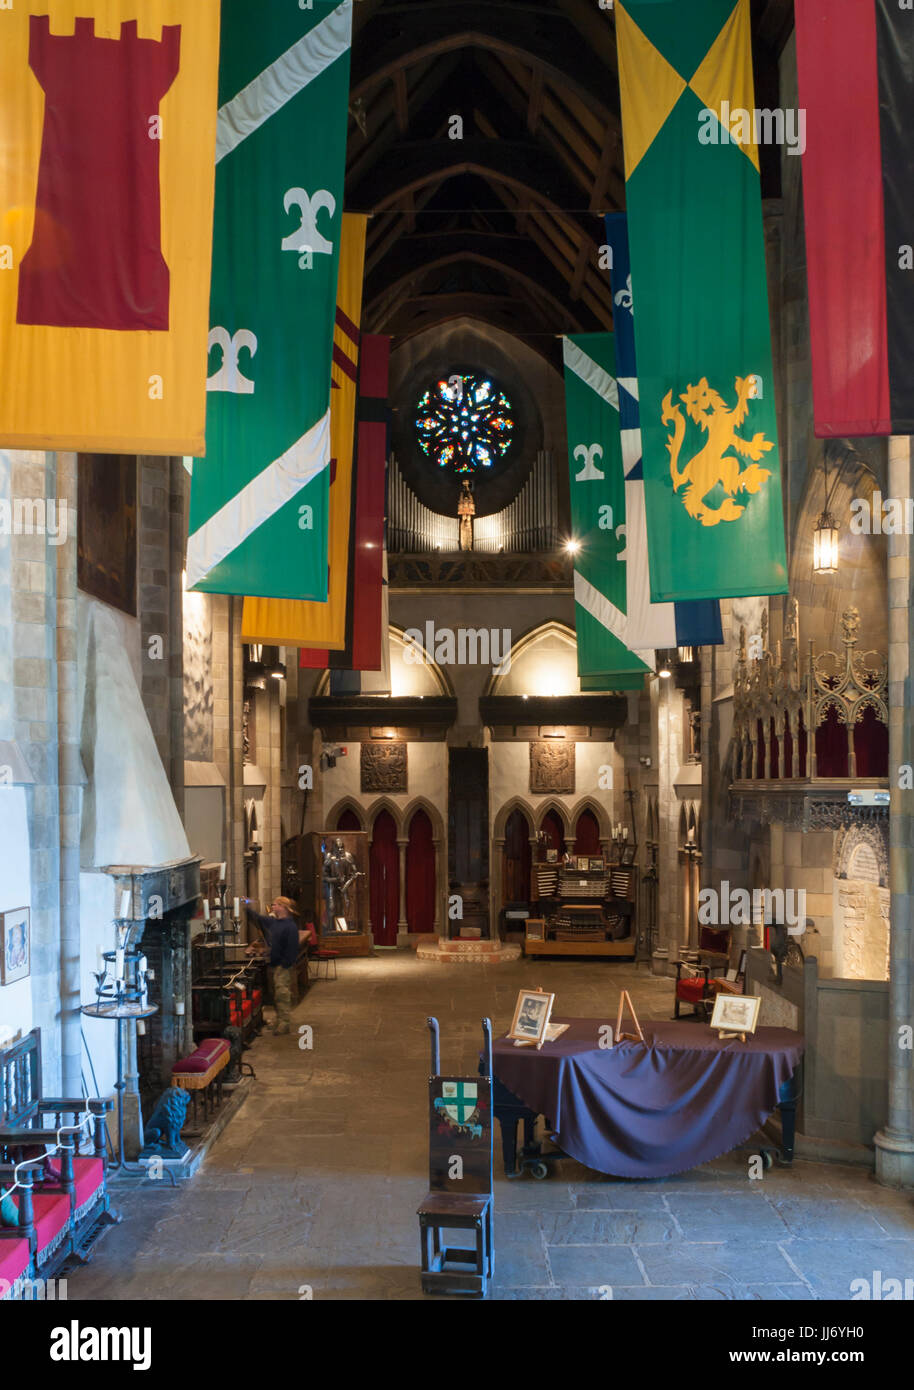 The Great Hall of the Hammond Castle, in Gloucester, Massachusetts. Colorful banners of arms are hanging from the - Stock Image